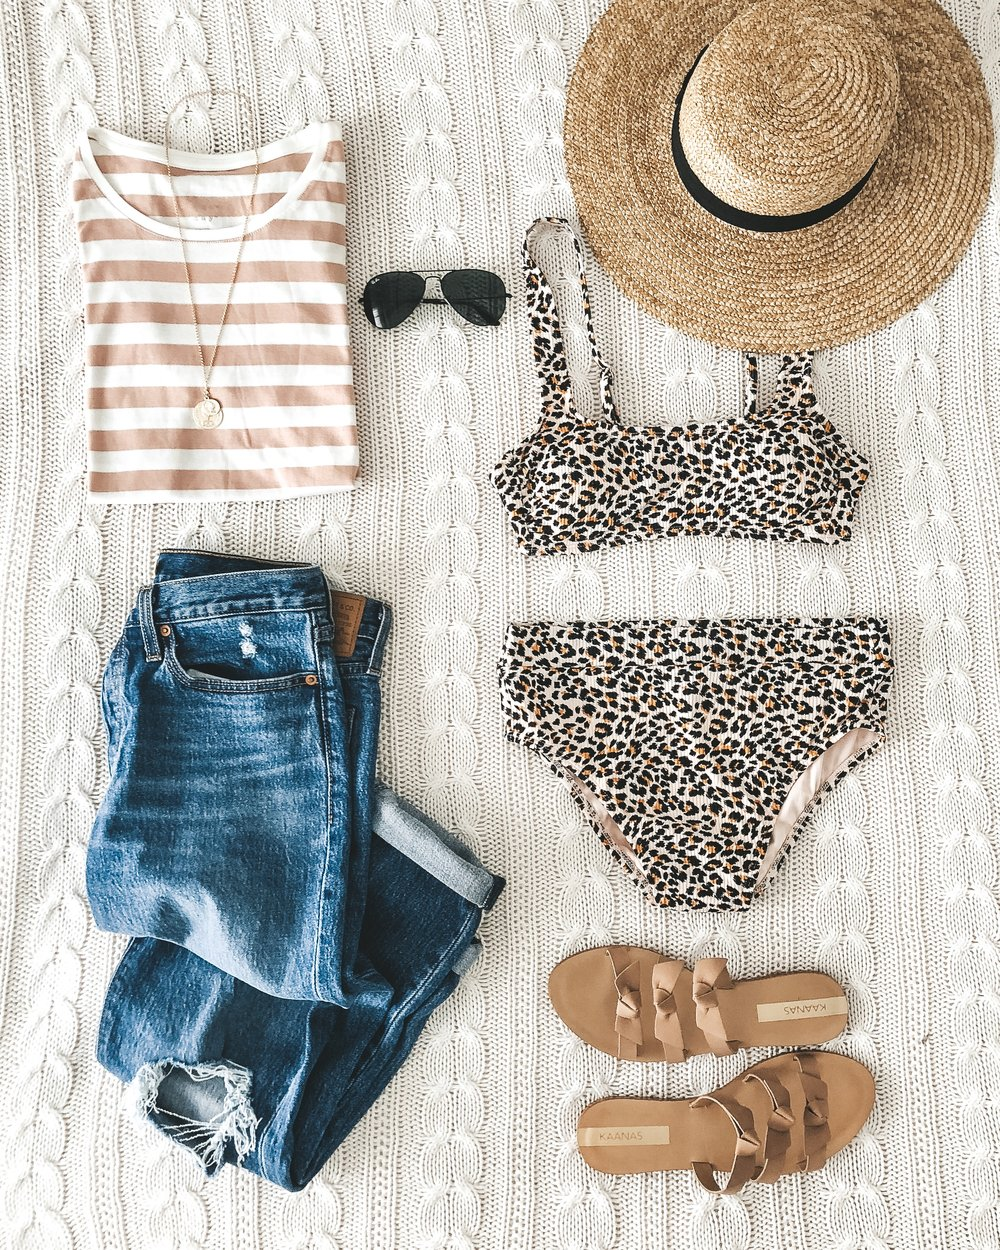 Cute summer beach outfit.  High waisted leopard bikini, straw hat, bow sandals, levi's wedgie fit, and a striped tee.